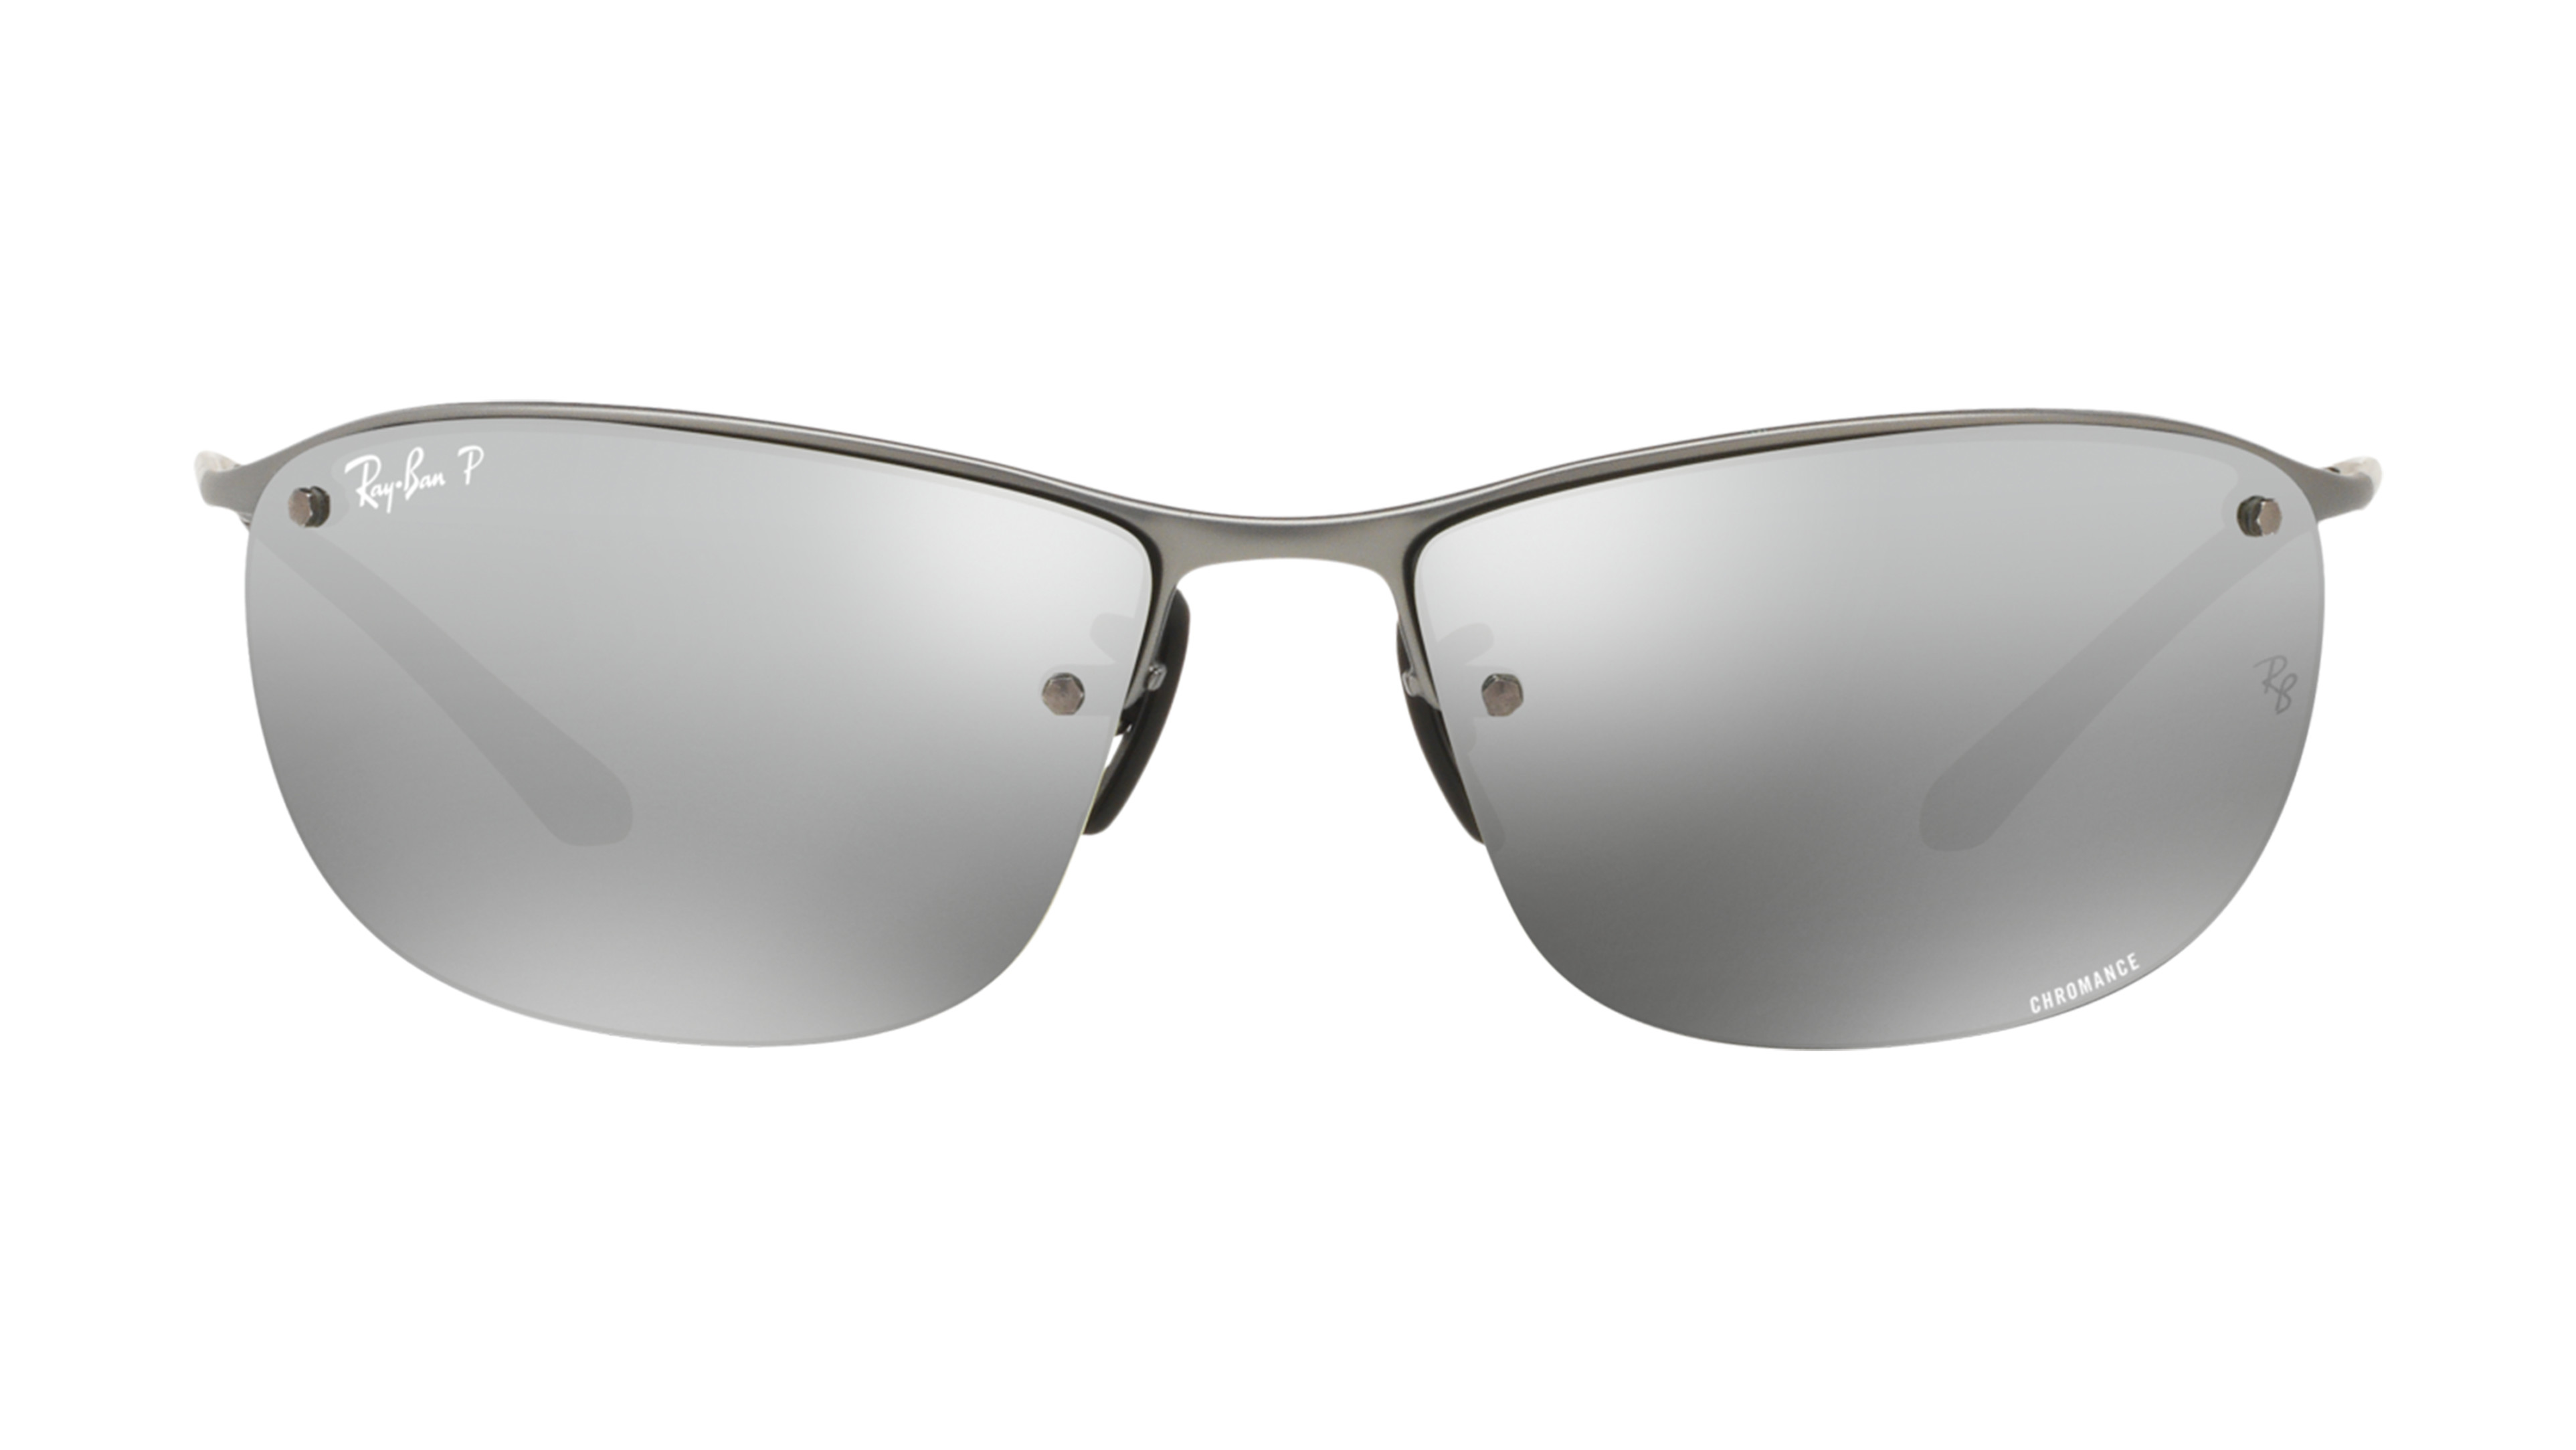 8053672582482-front-Ray-Ban-0RB3542-029-5J